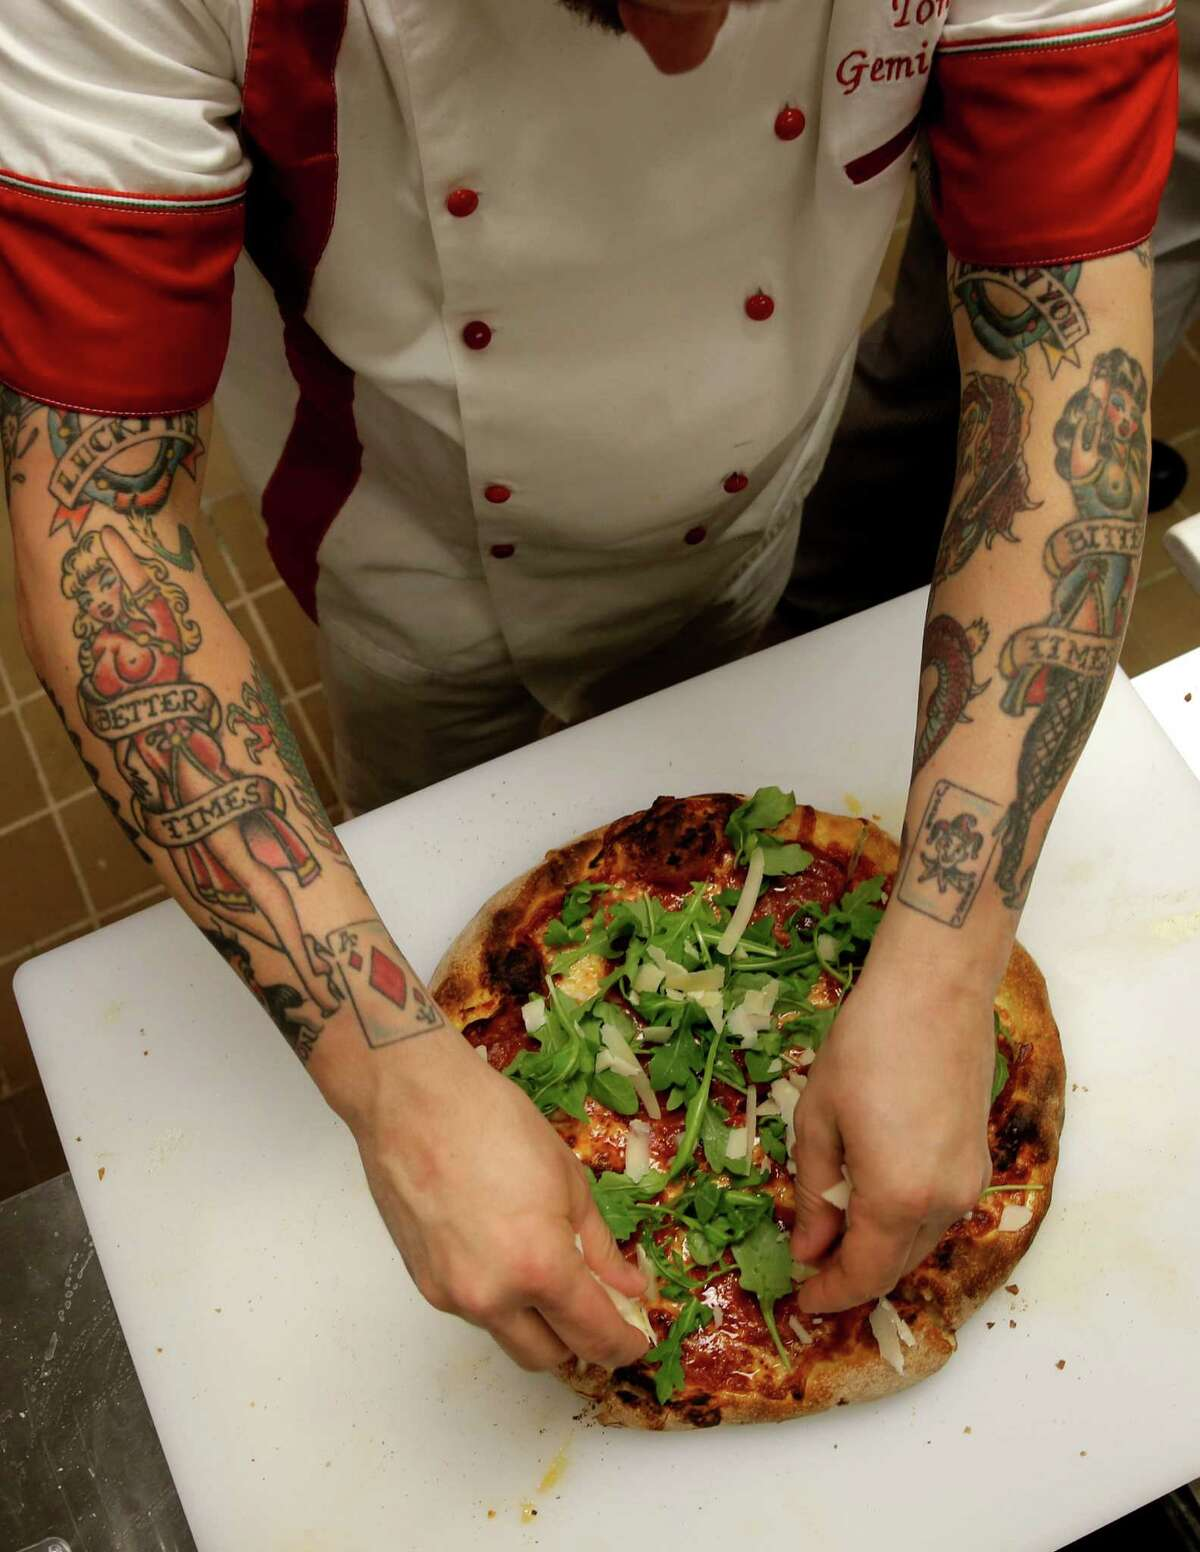 Tony Gemignani demonstrates to his kitchen staff the proper preparation of one of his award-winning pizza at his newest Pizza Rock restaurant located n Henderson, Nv., on Wed. March 11, 2015.